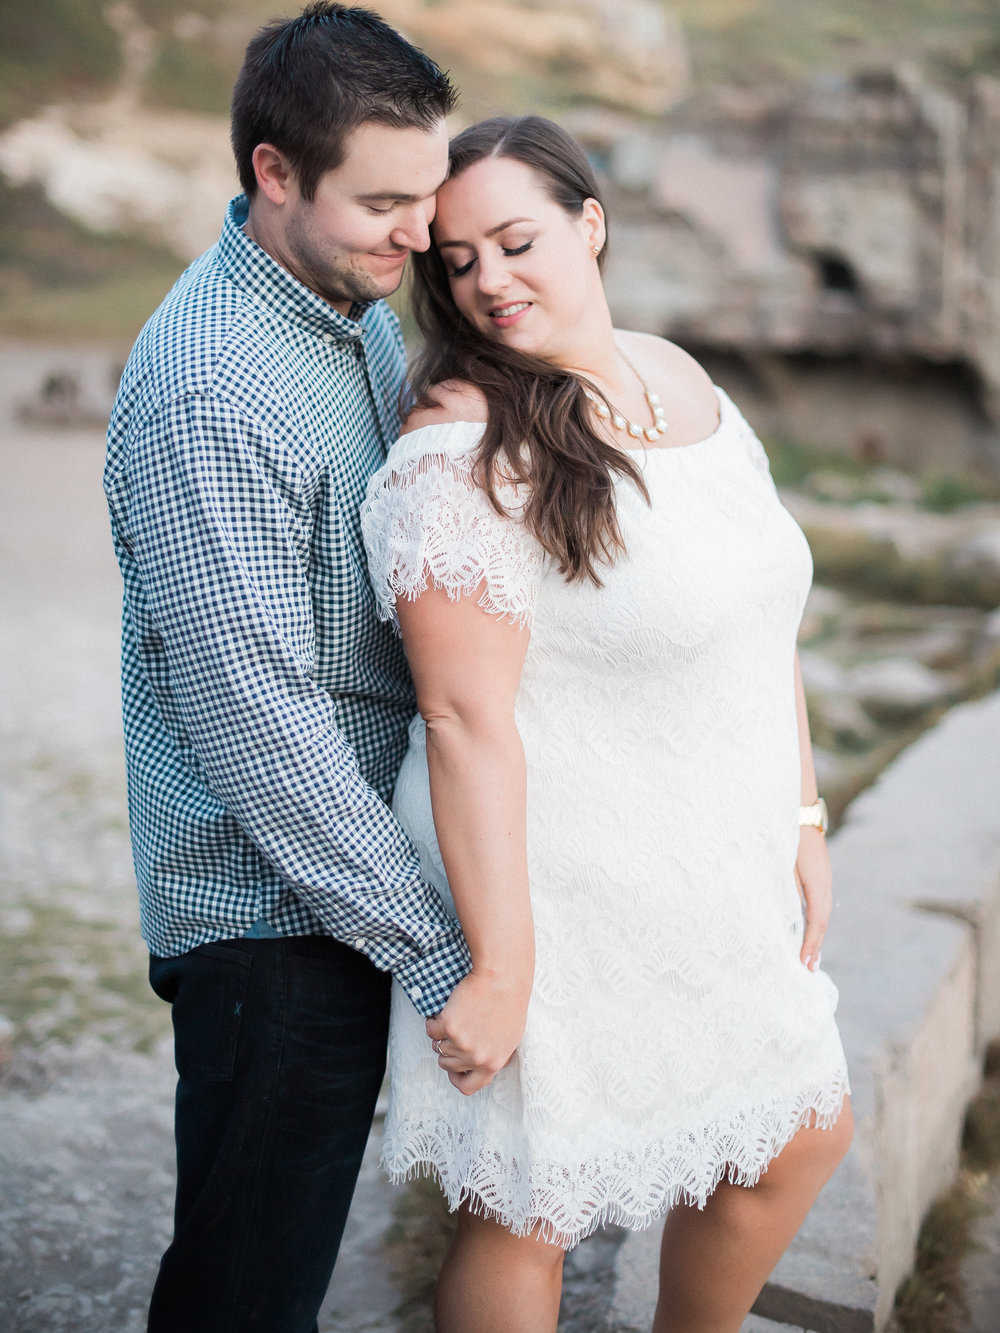 Megan+David_Engagement_spp-68.jpg